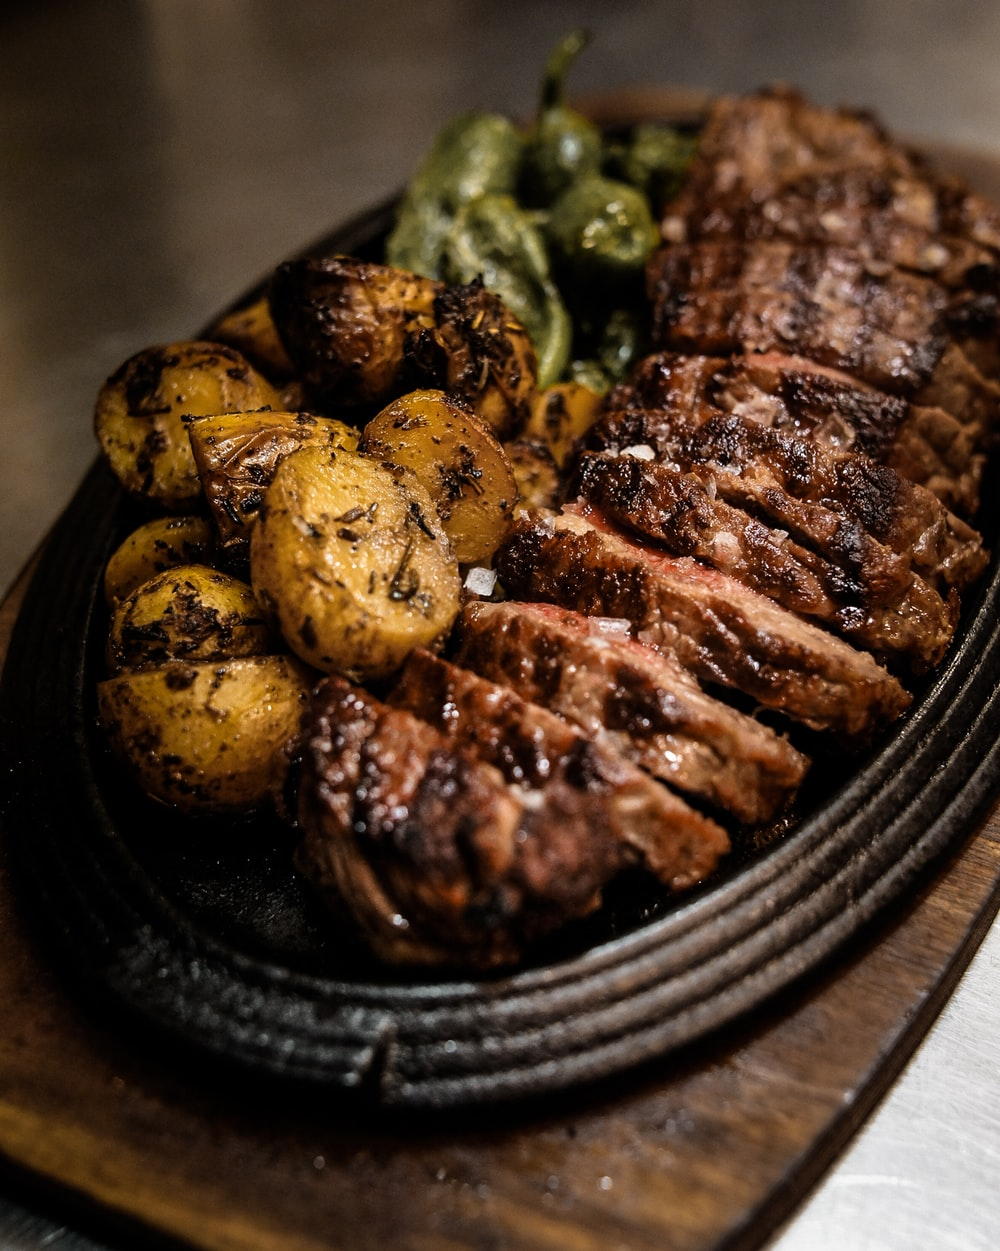 grilled meat on black ceramic plate